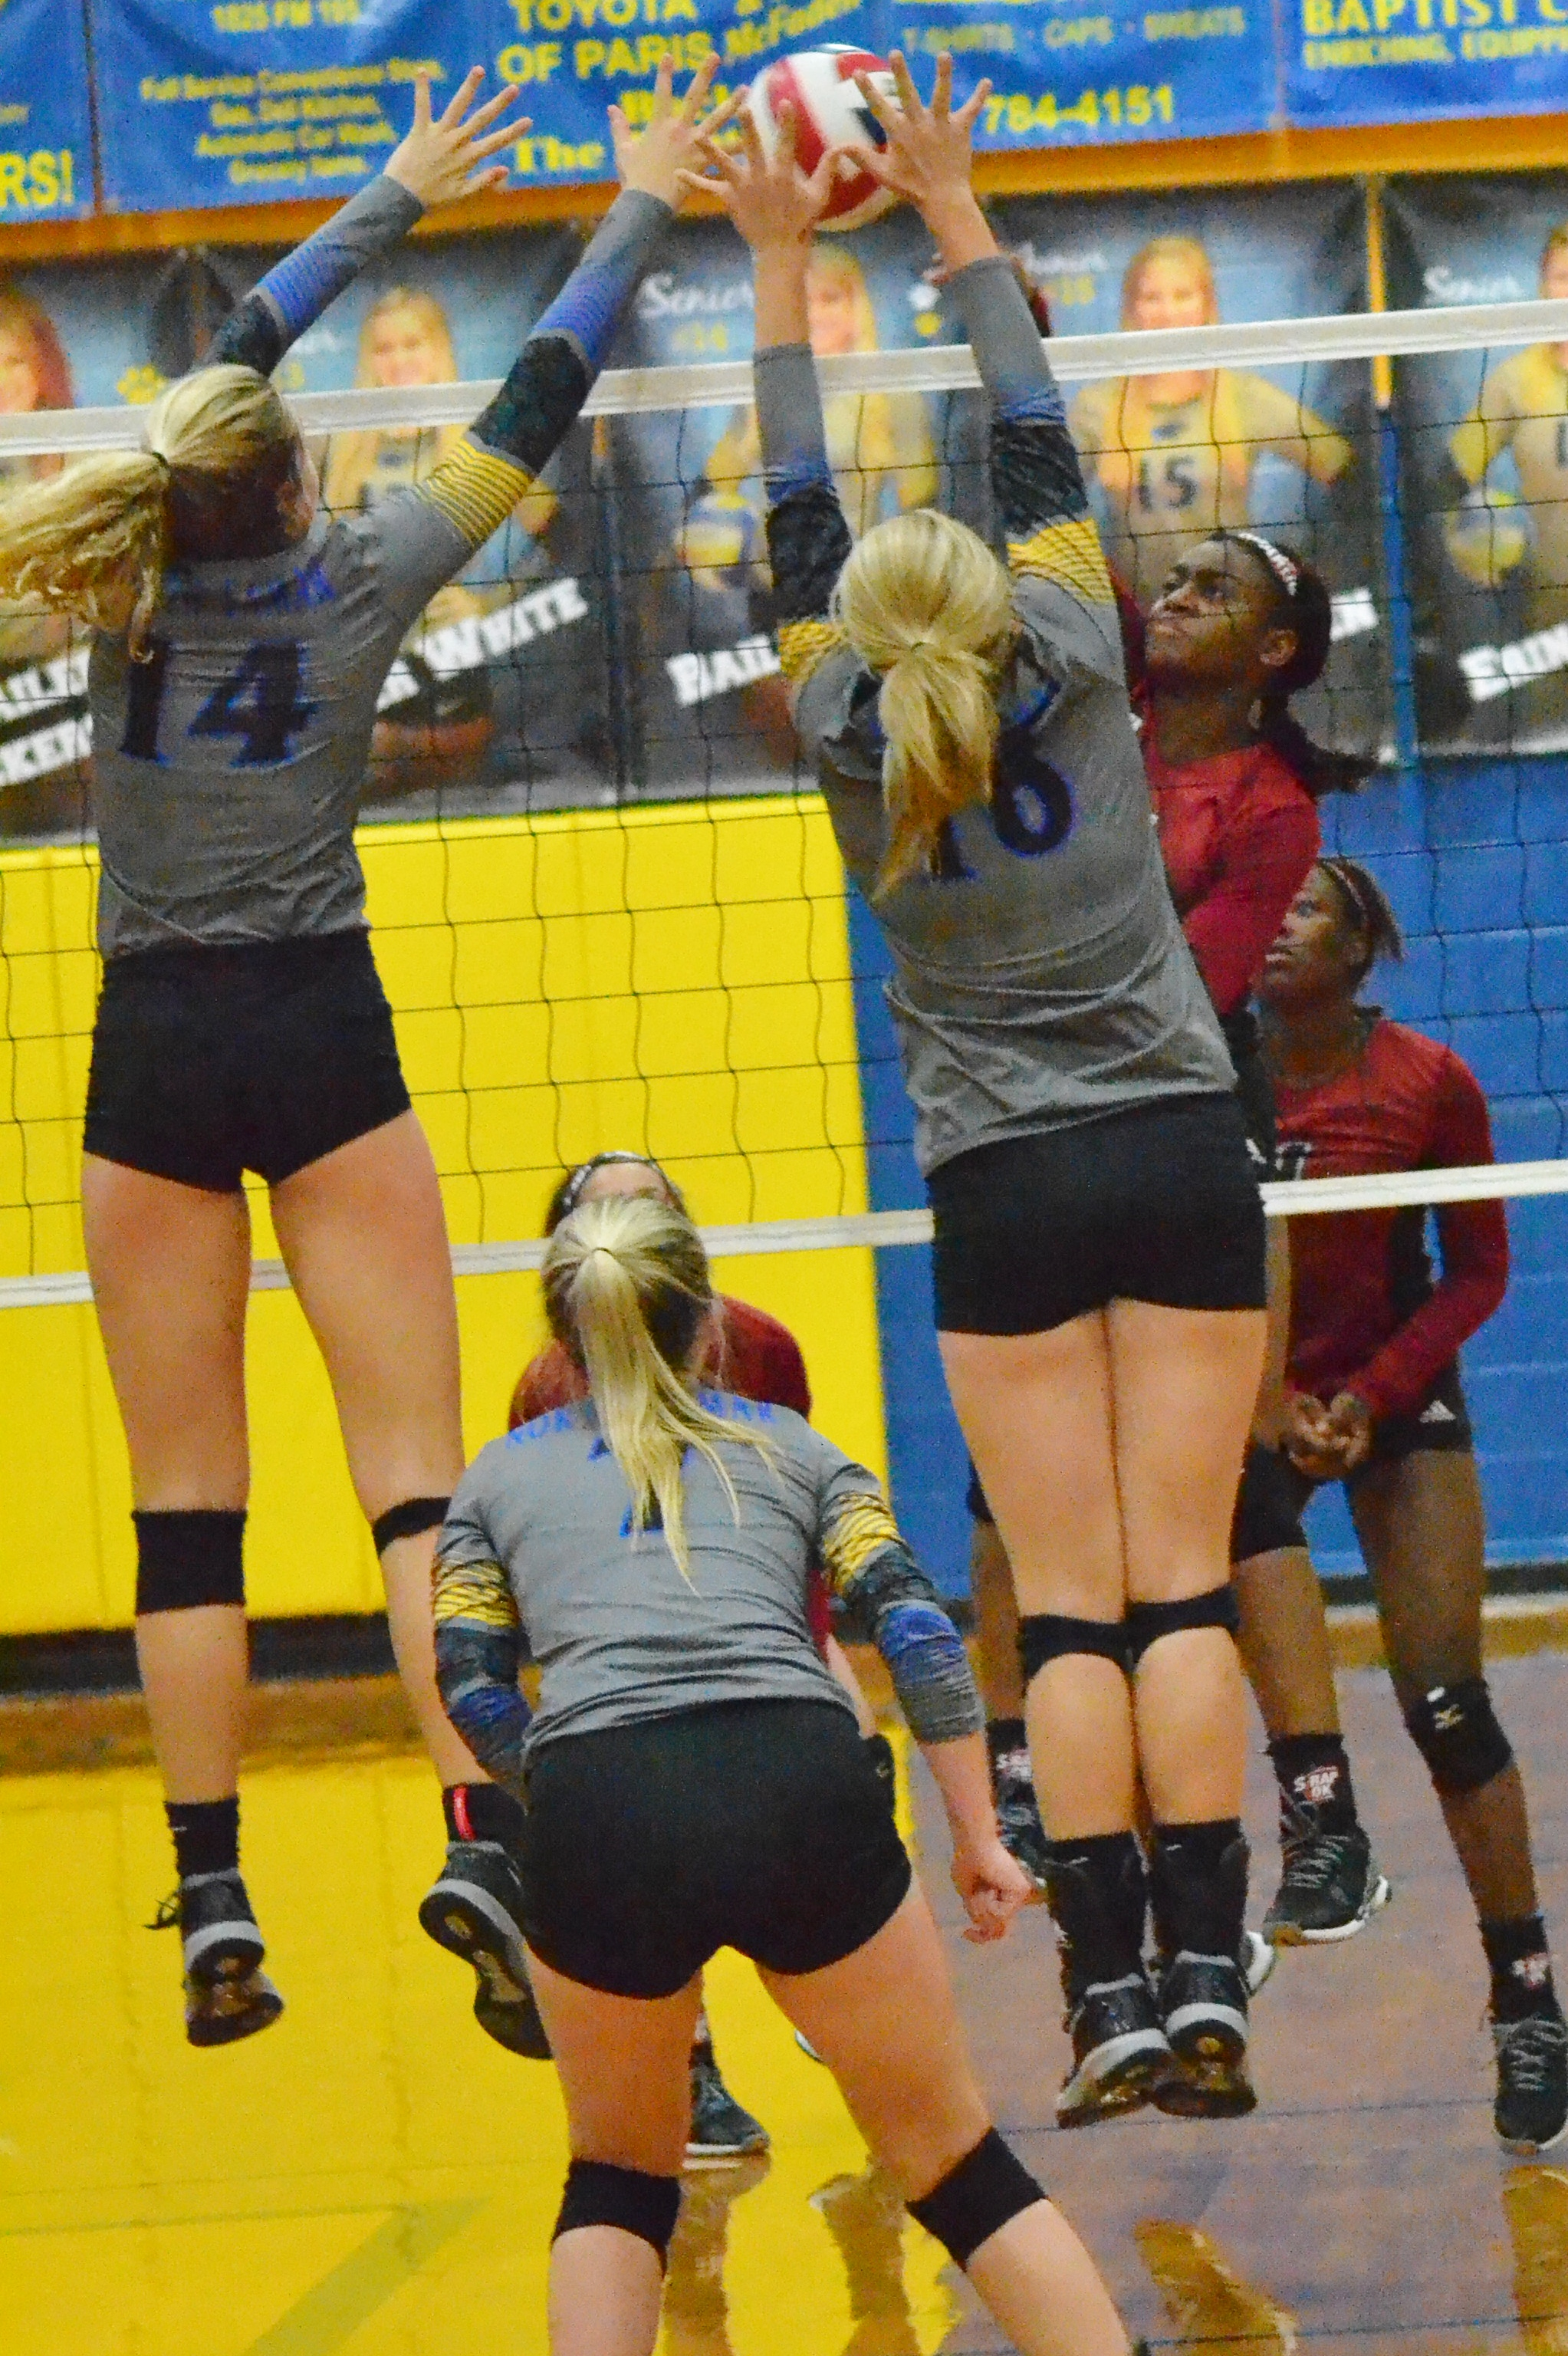 (Photo by Beverly White) Bailey Foy (14) and Erin Scholl (16) going up for a block against LE while Haley Porter (7) looks on.